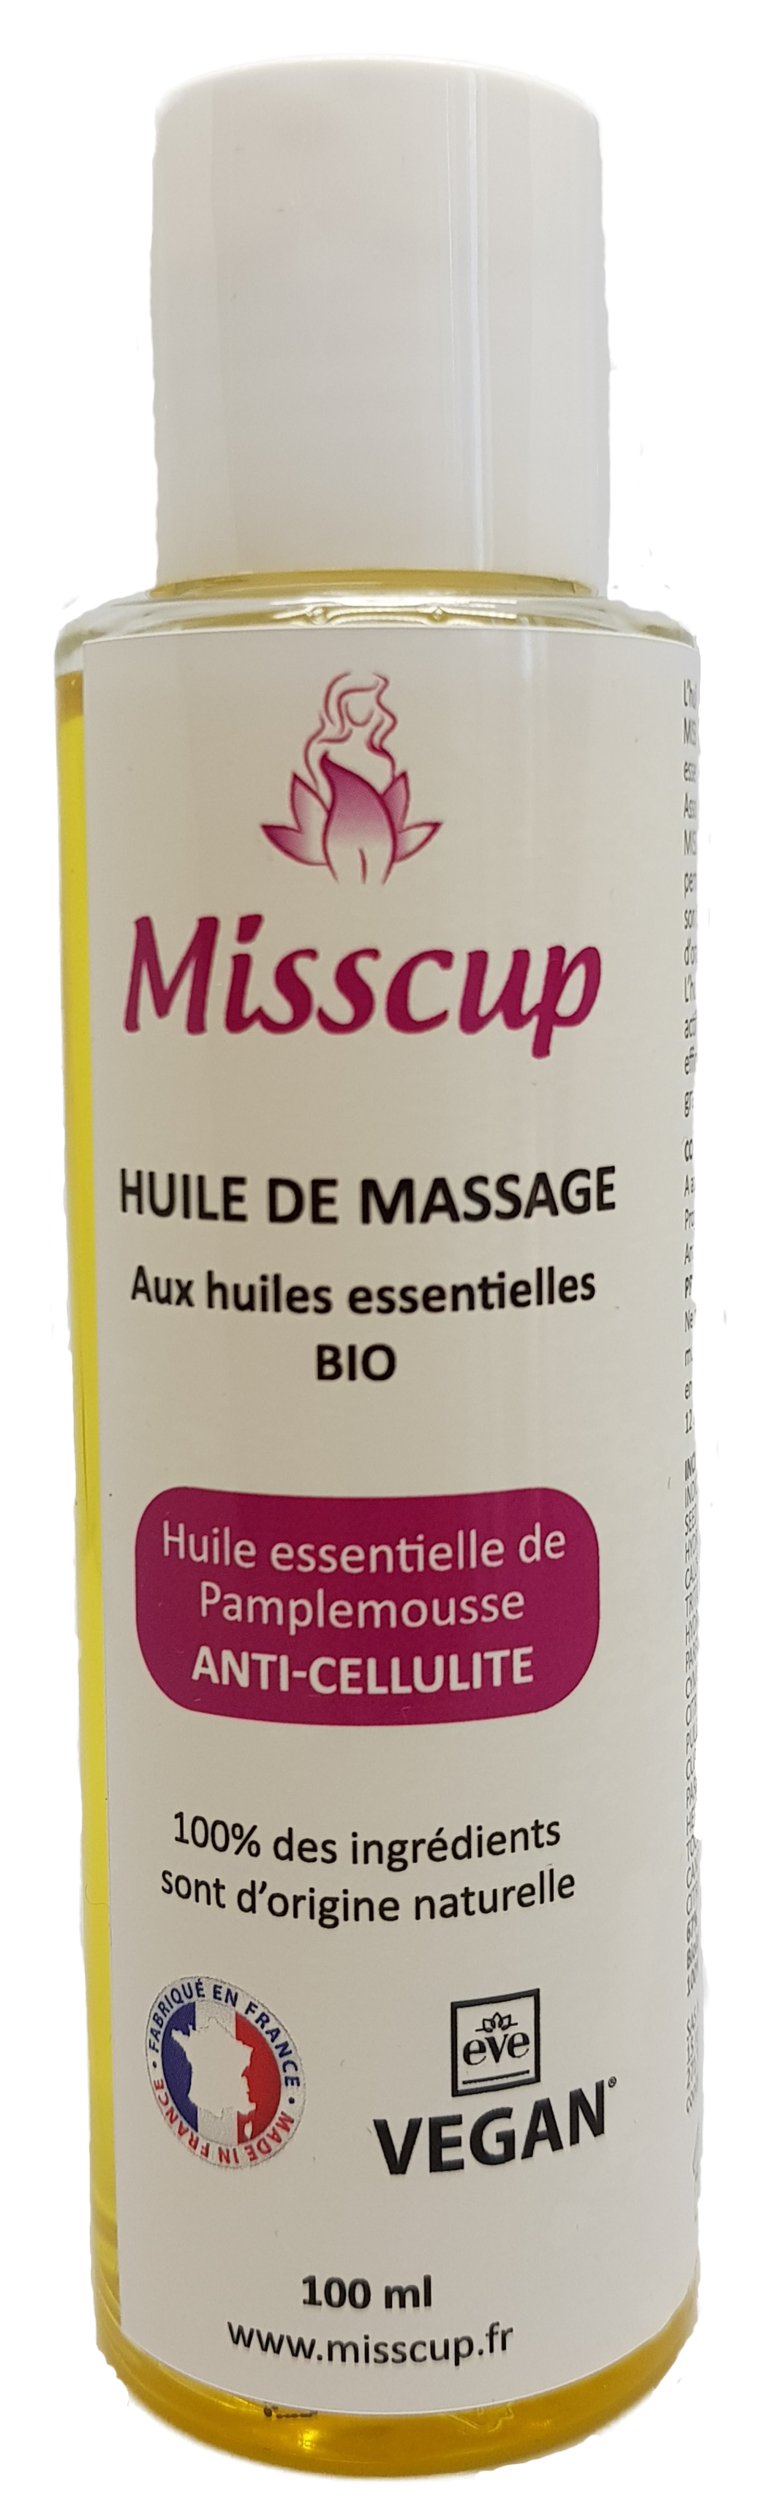 Huile de massage BIO anti-cellulite